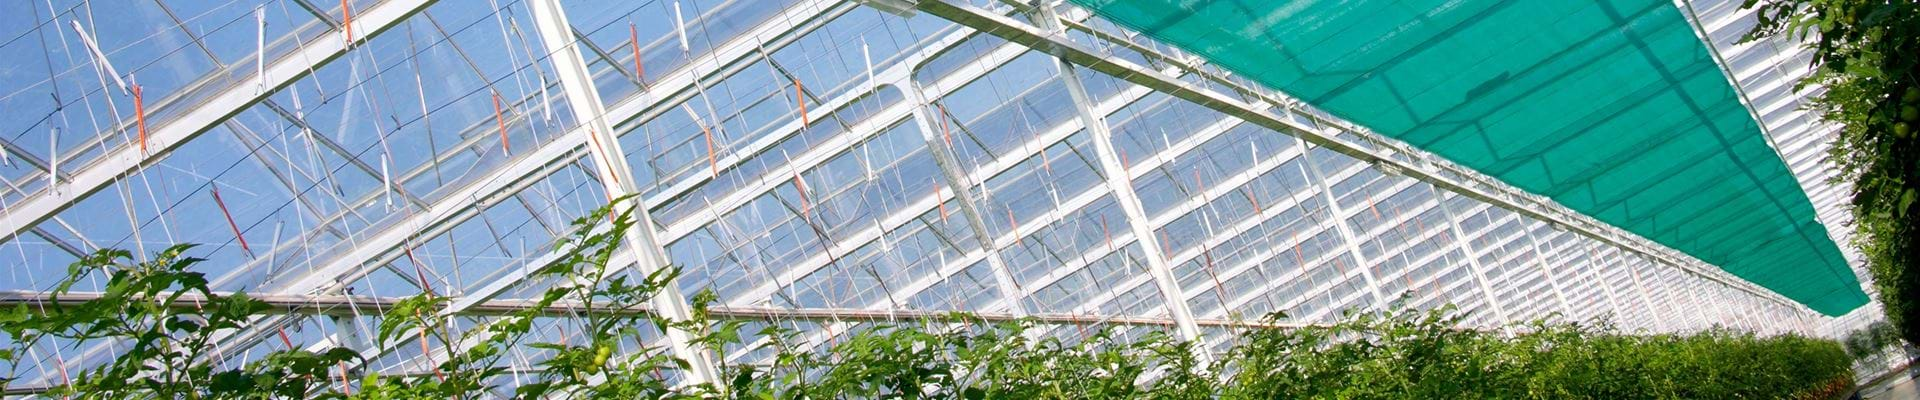 Screens - Gakon Horticultural Projects - Turn-key Greenhouse Projects